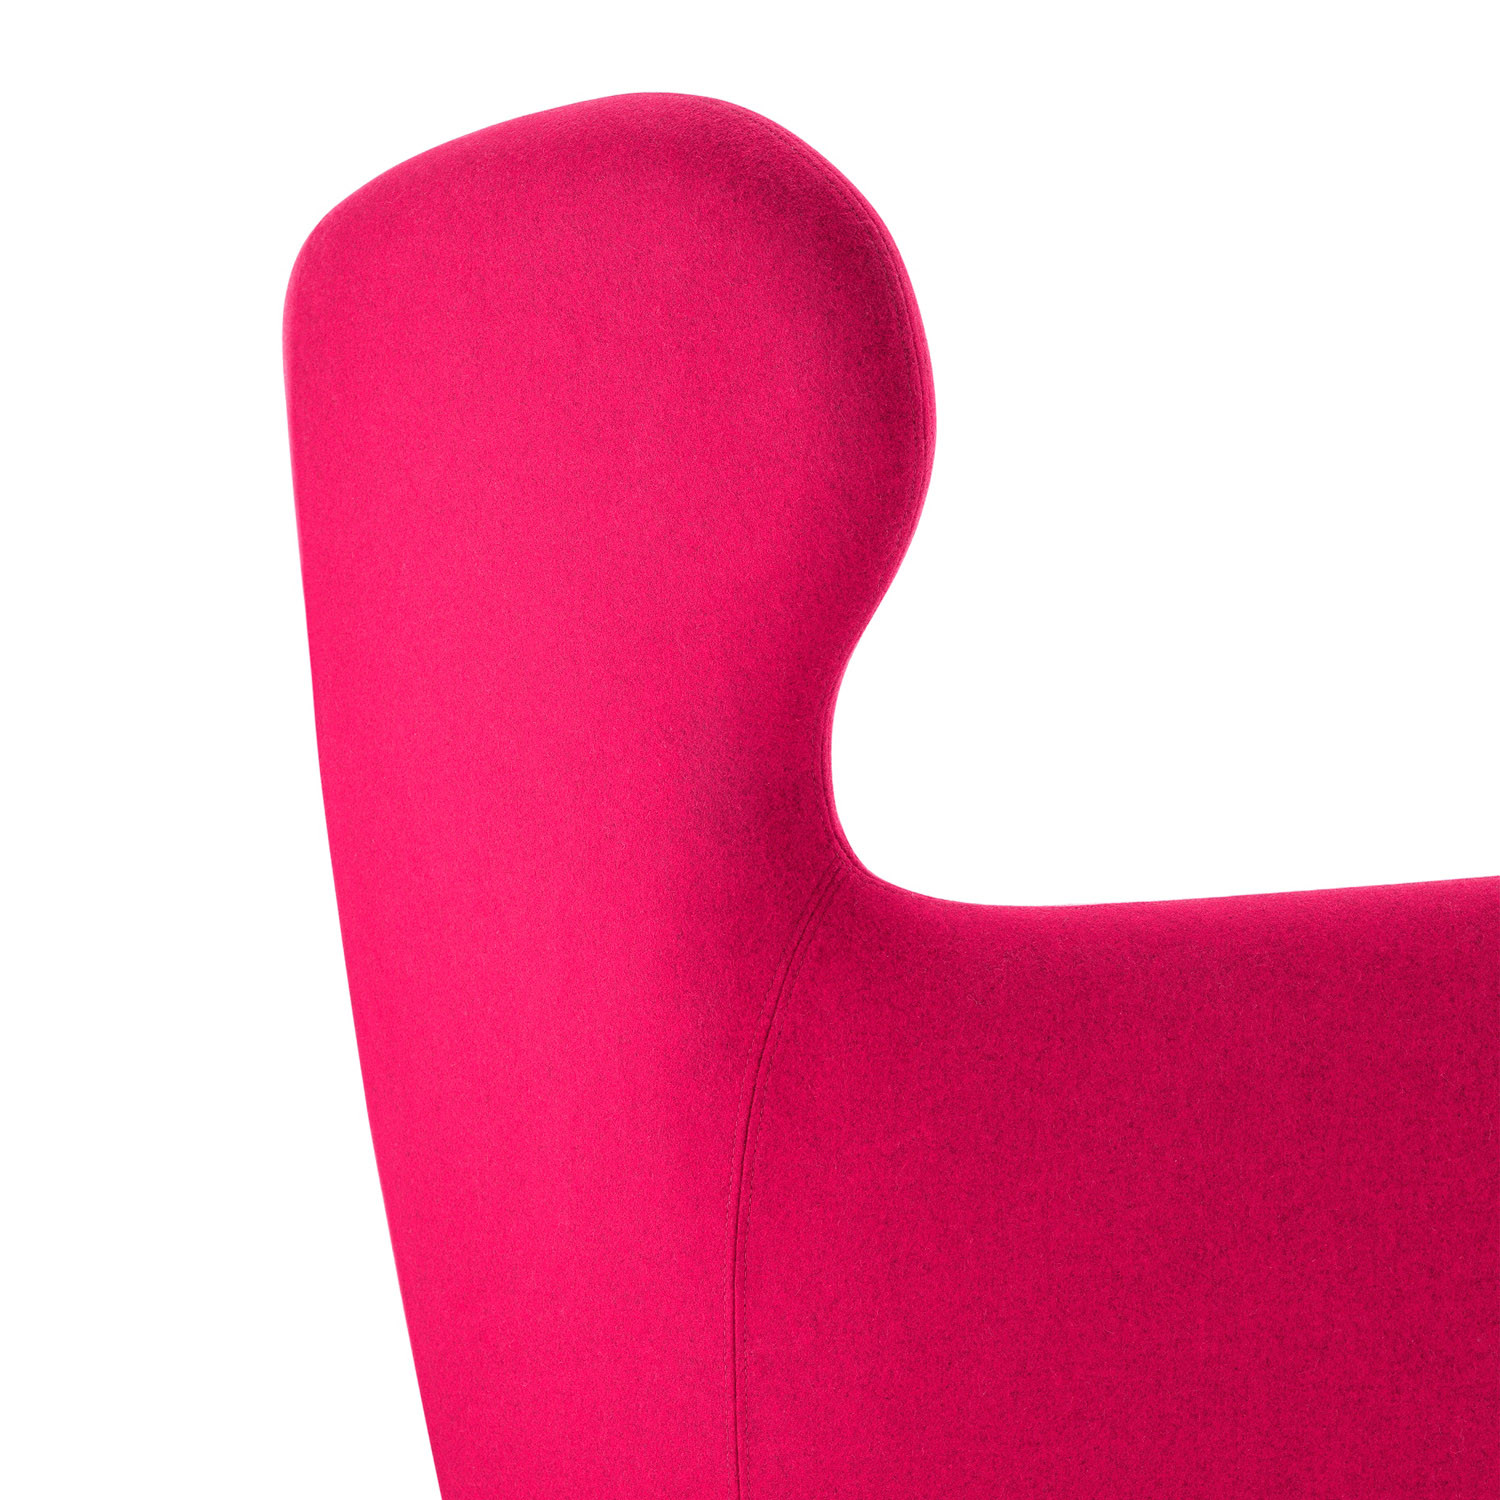 Mr and Mrs Armchairs from Lyndon Design